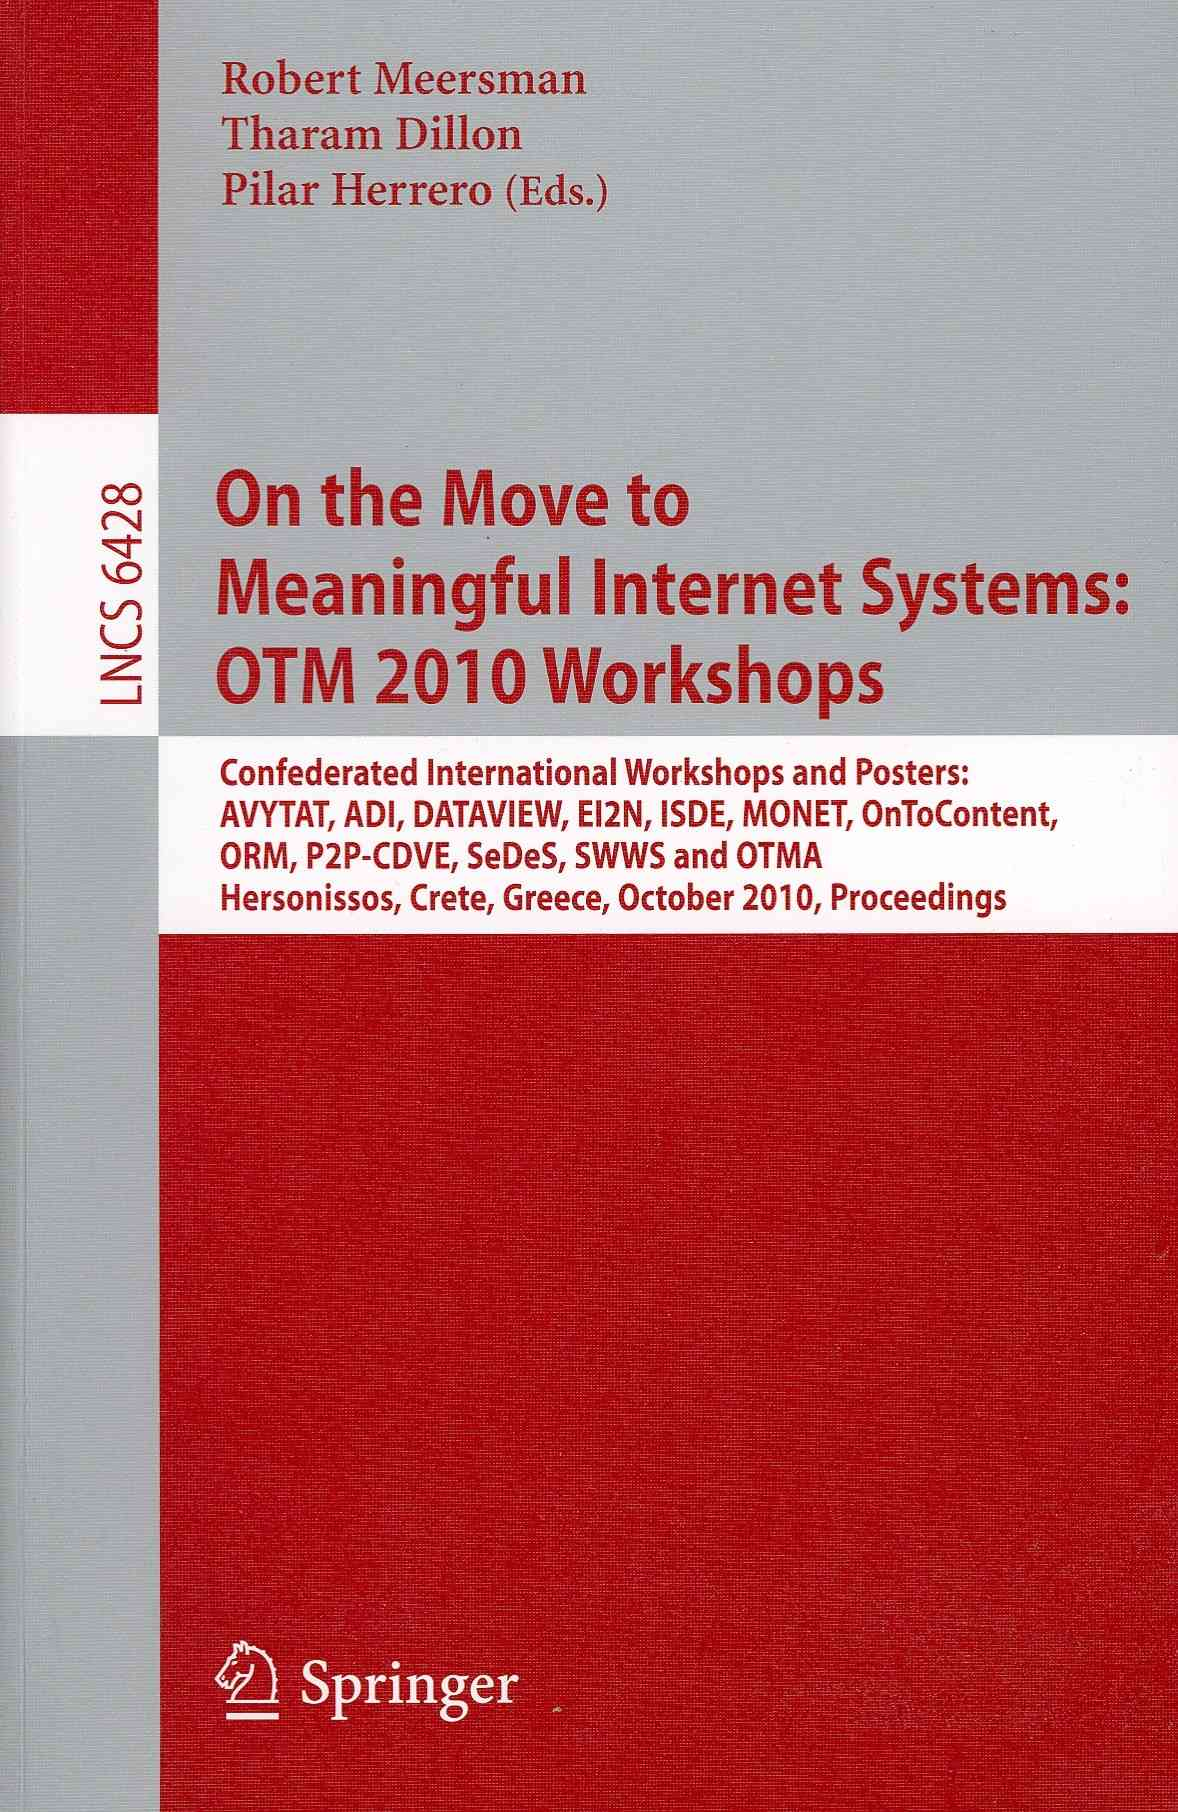 On the Move to Meaningful Internet Systems By Meersman, Robert (EDT)